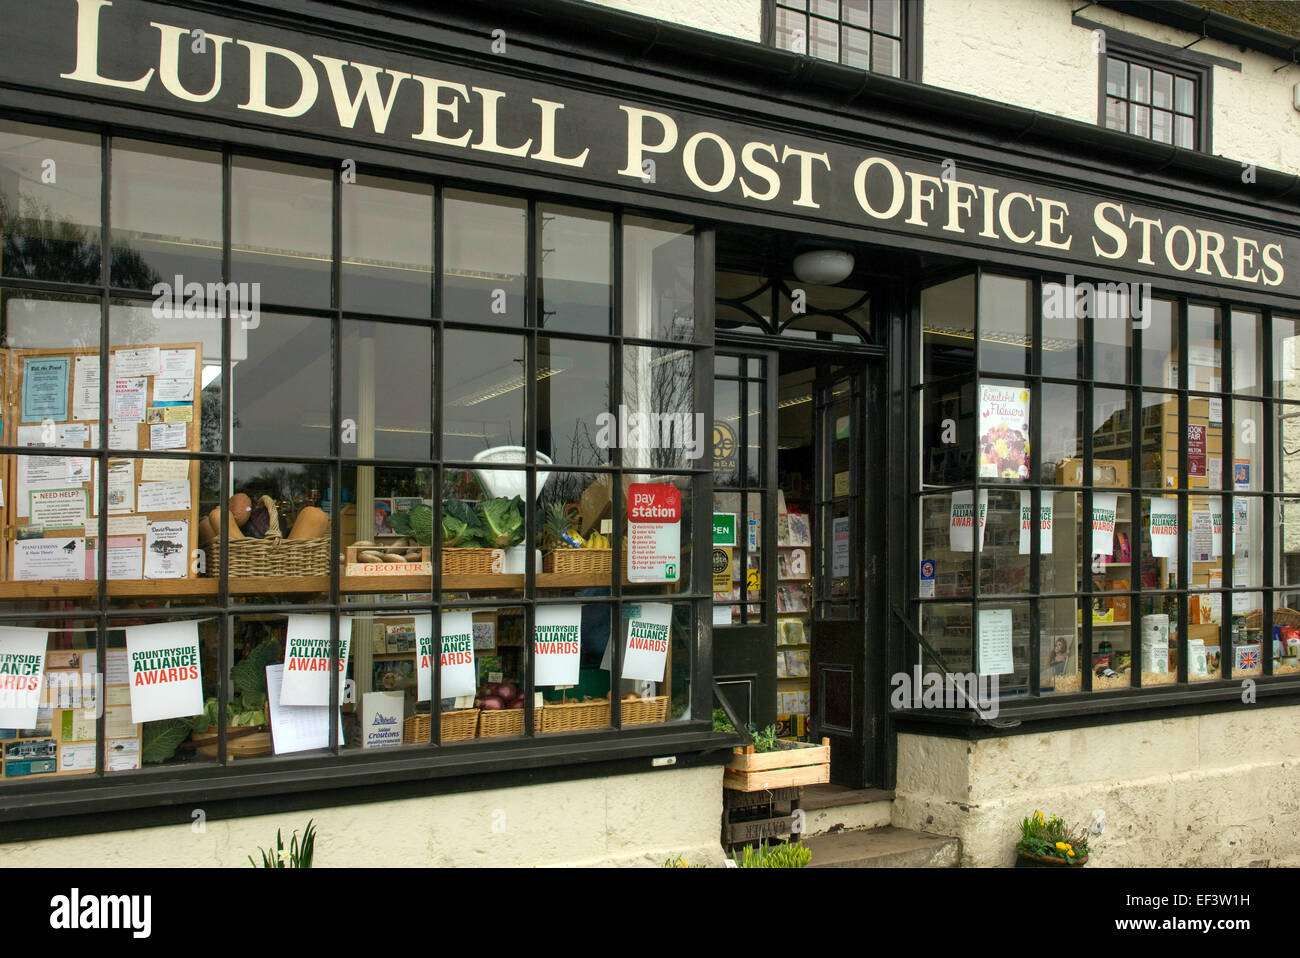 Office Stores Ludwell Post Office Stores Stock Photo 78146813 Alamy